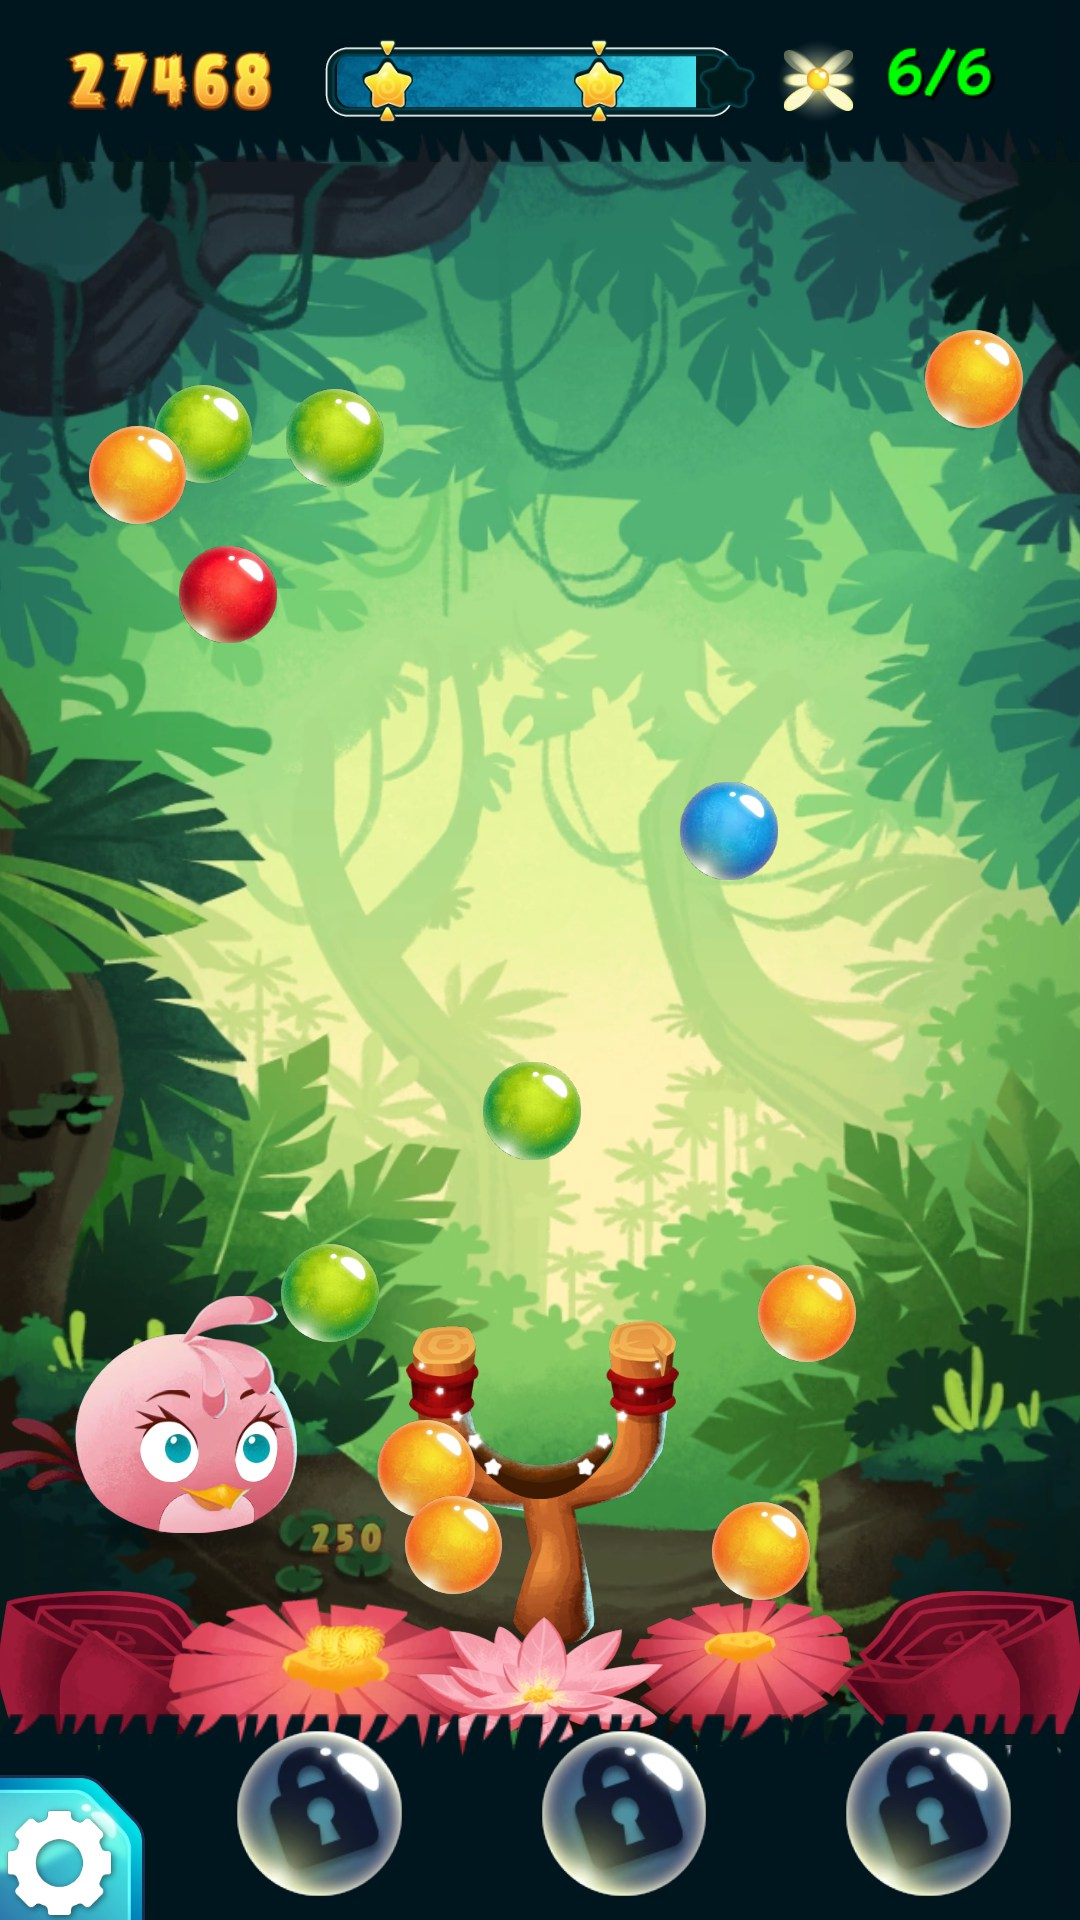 Free Download Of Angry Birds For Android